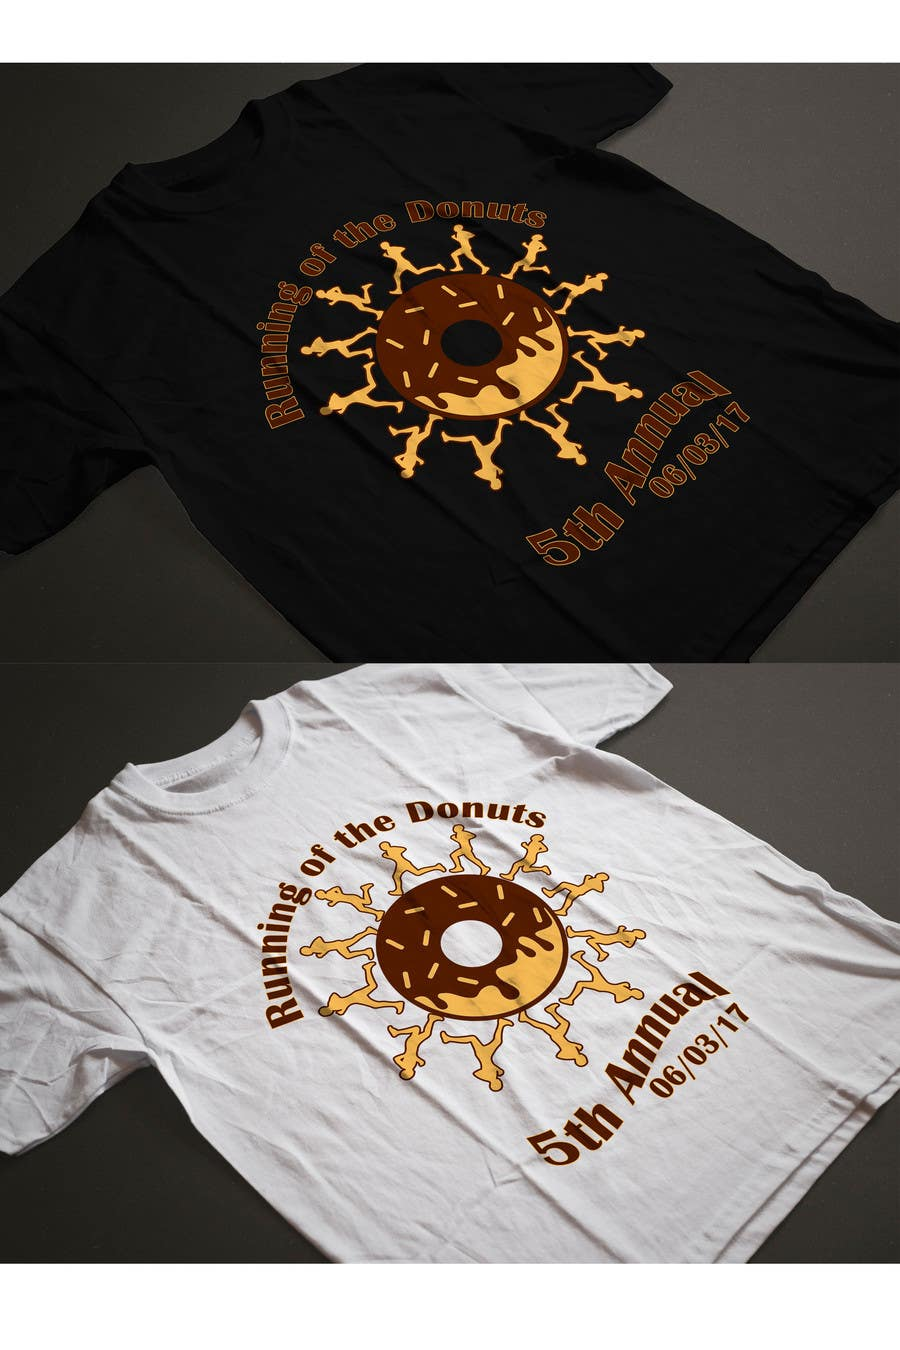 Proposition n°12 du concours Design a T-shirt for the 5th Annual Running of the Donuts